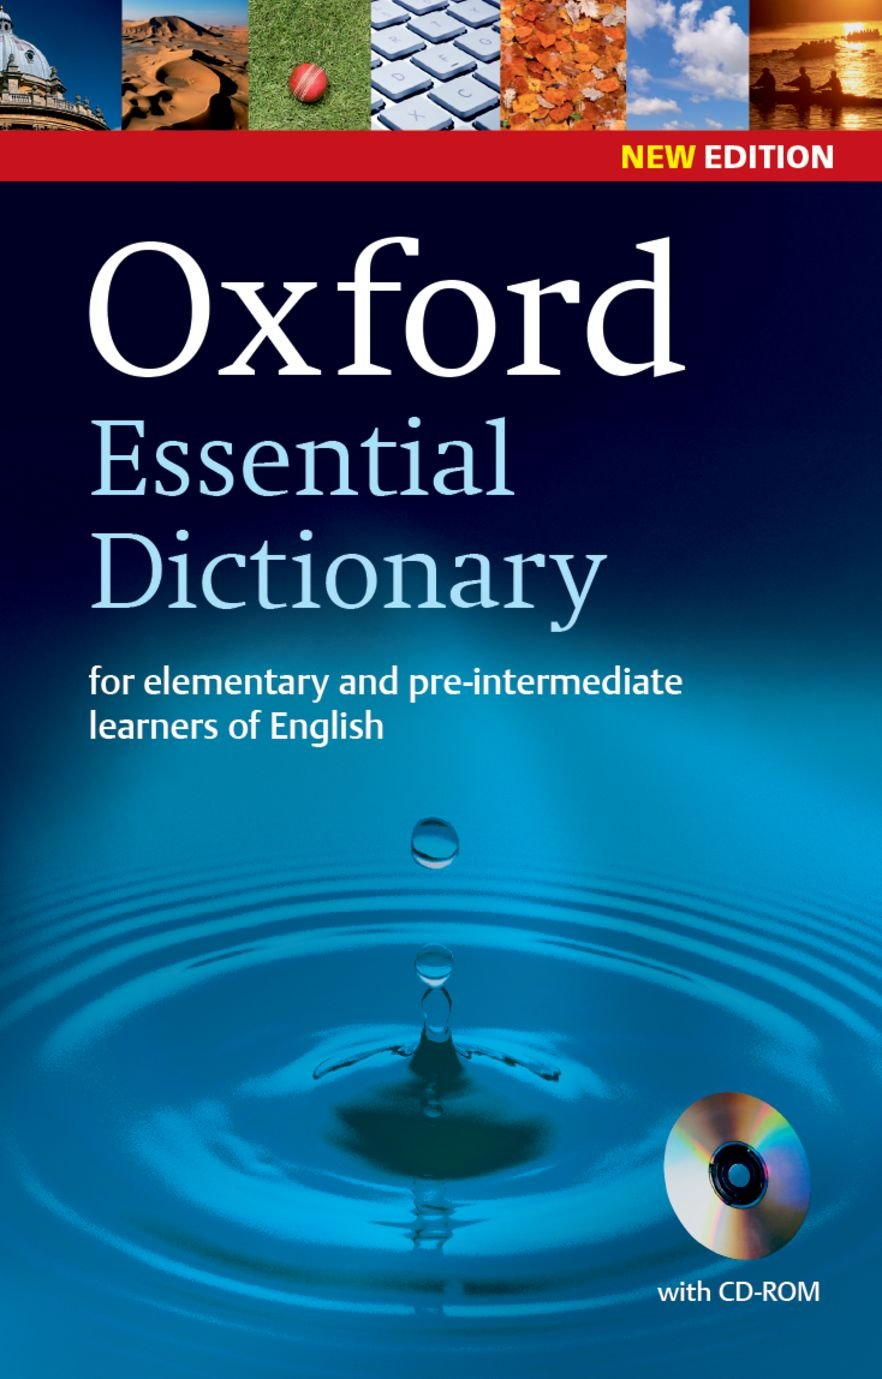 Oxford Essential Dictionary with CD-ROM: For Elementary and Pre-Intermediate Learners of English